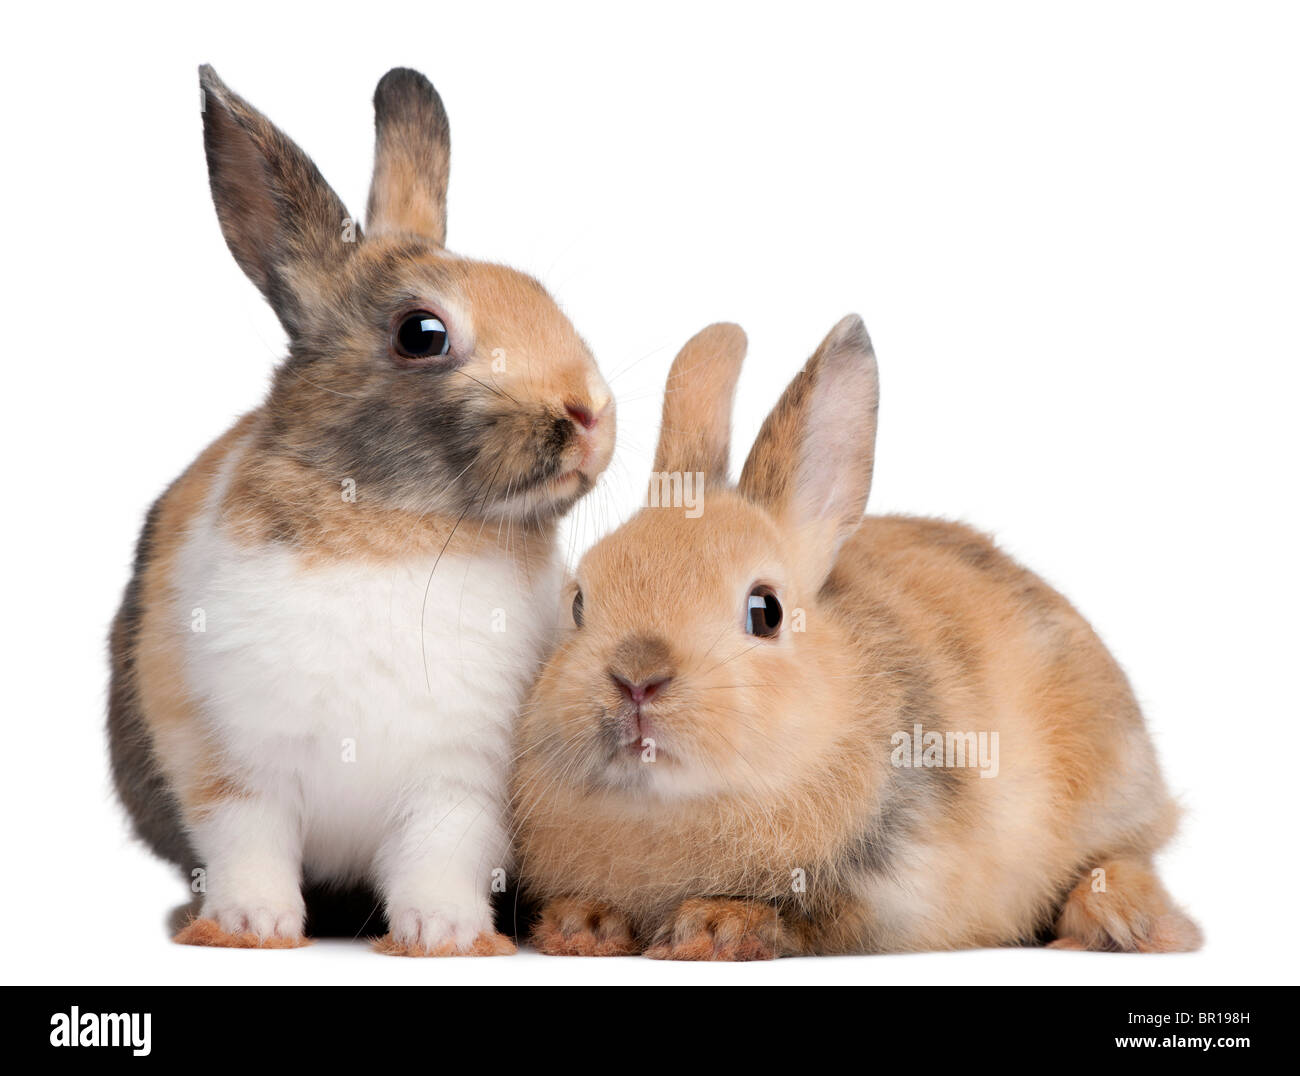 Portrait of European Rabbits, Oryctolagus cuniculus, sitting in front of white background - Stock Image